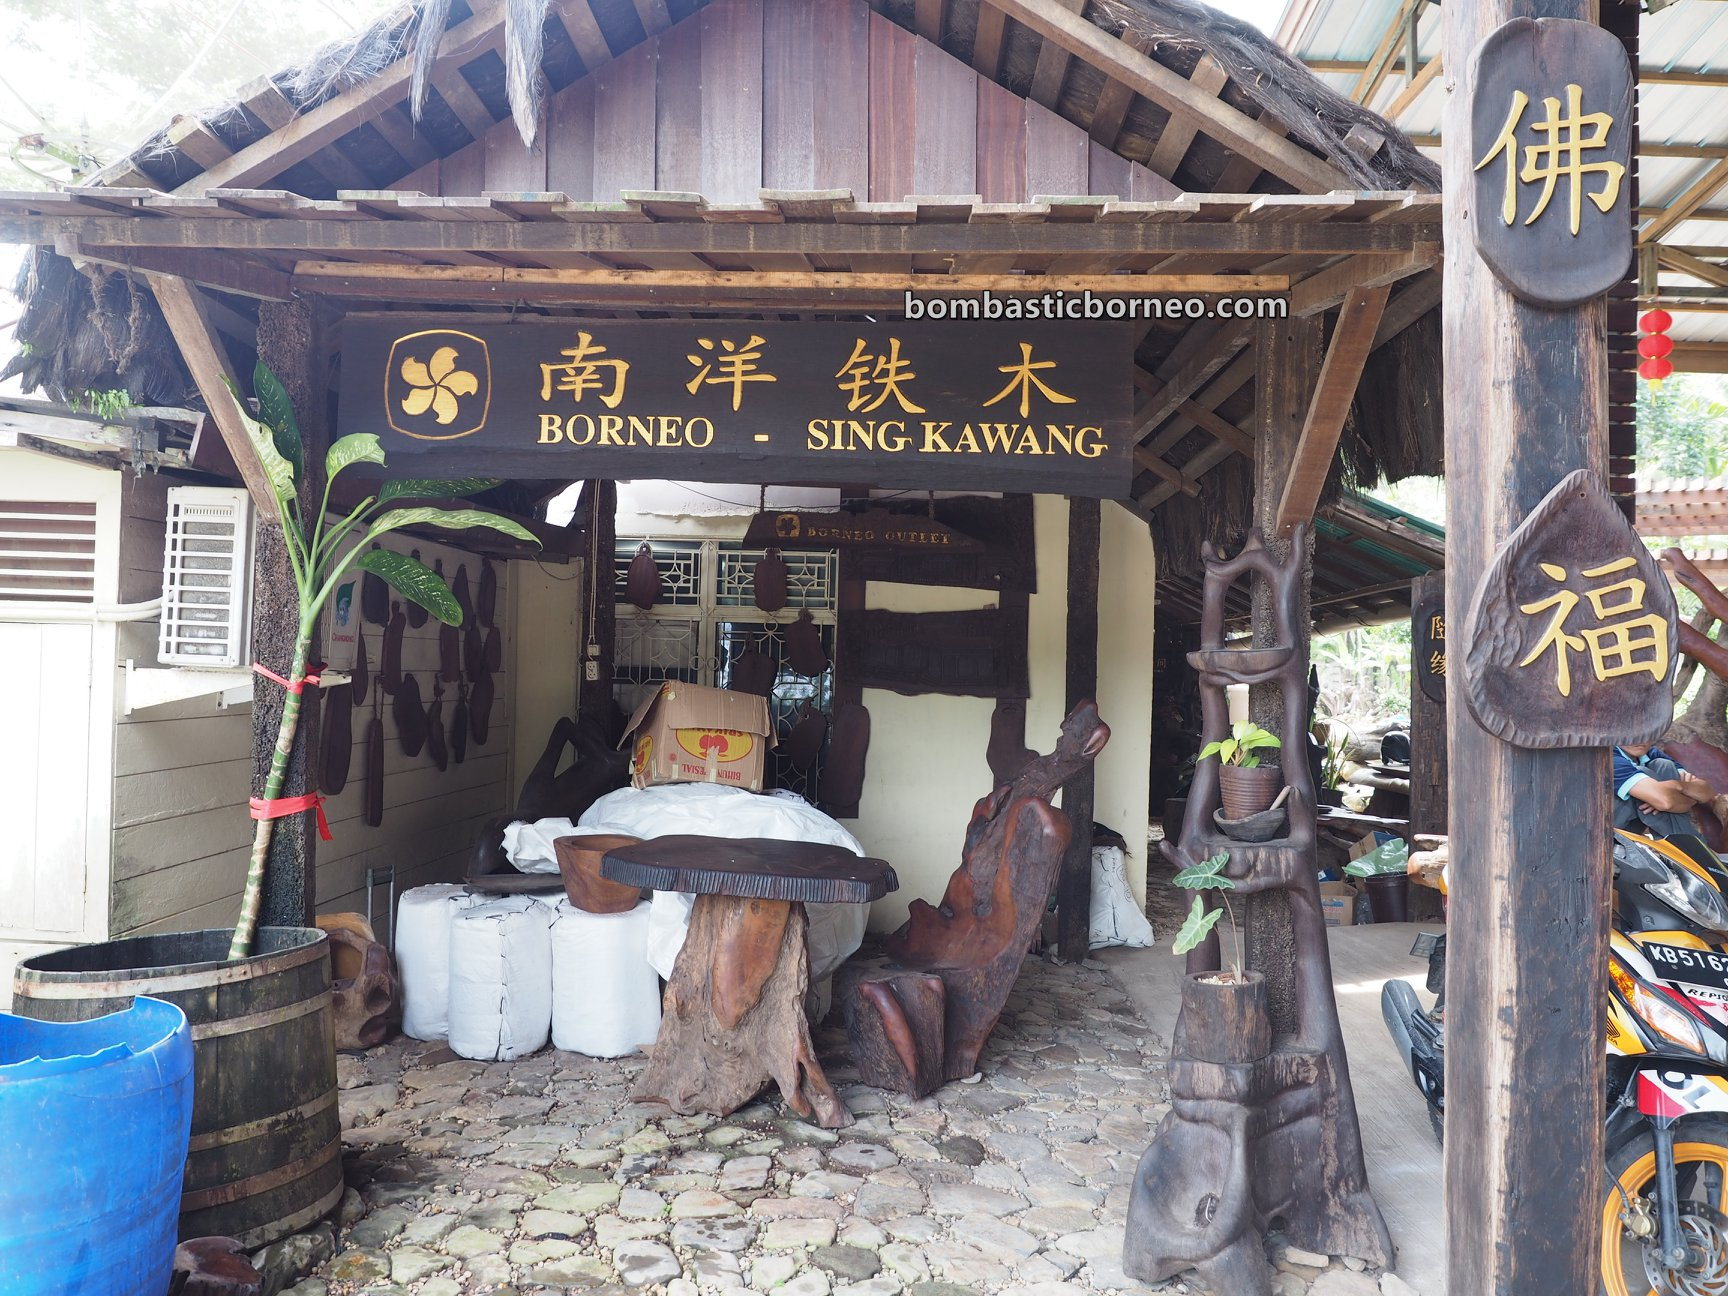 backpackers, hard wood, kayu belian, Borneo Wood Furniture, exhibition, gallery, Singkawang, Indonesia, West Kalimantan, kerajinan kayu, Tourism, travel guide, wood sculptures, wood crafts,